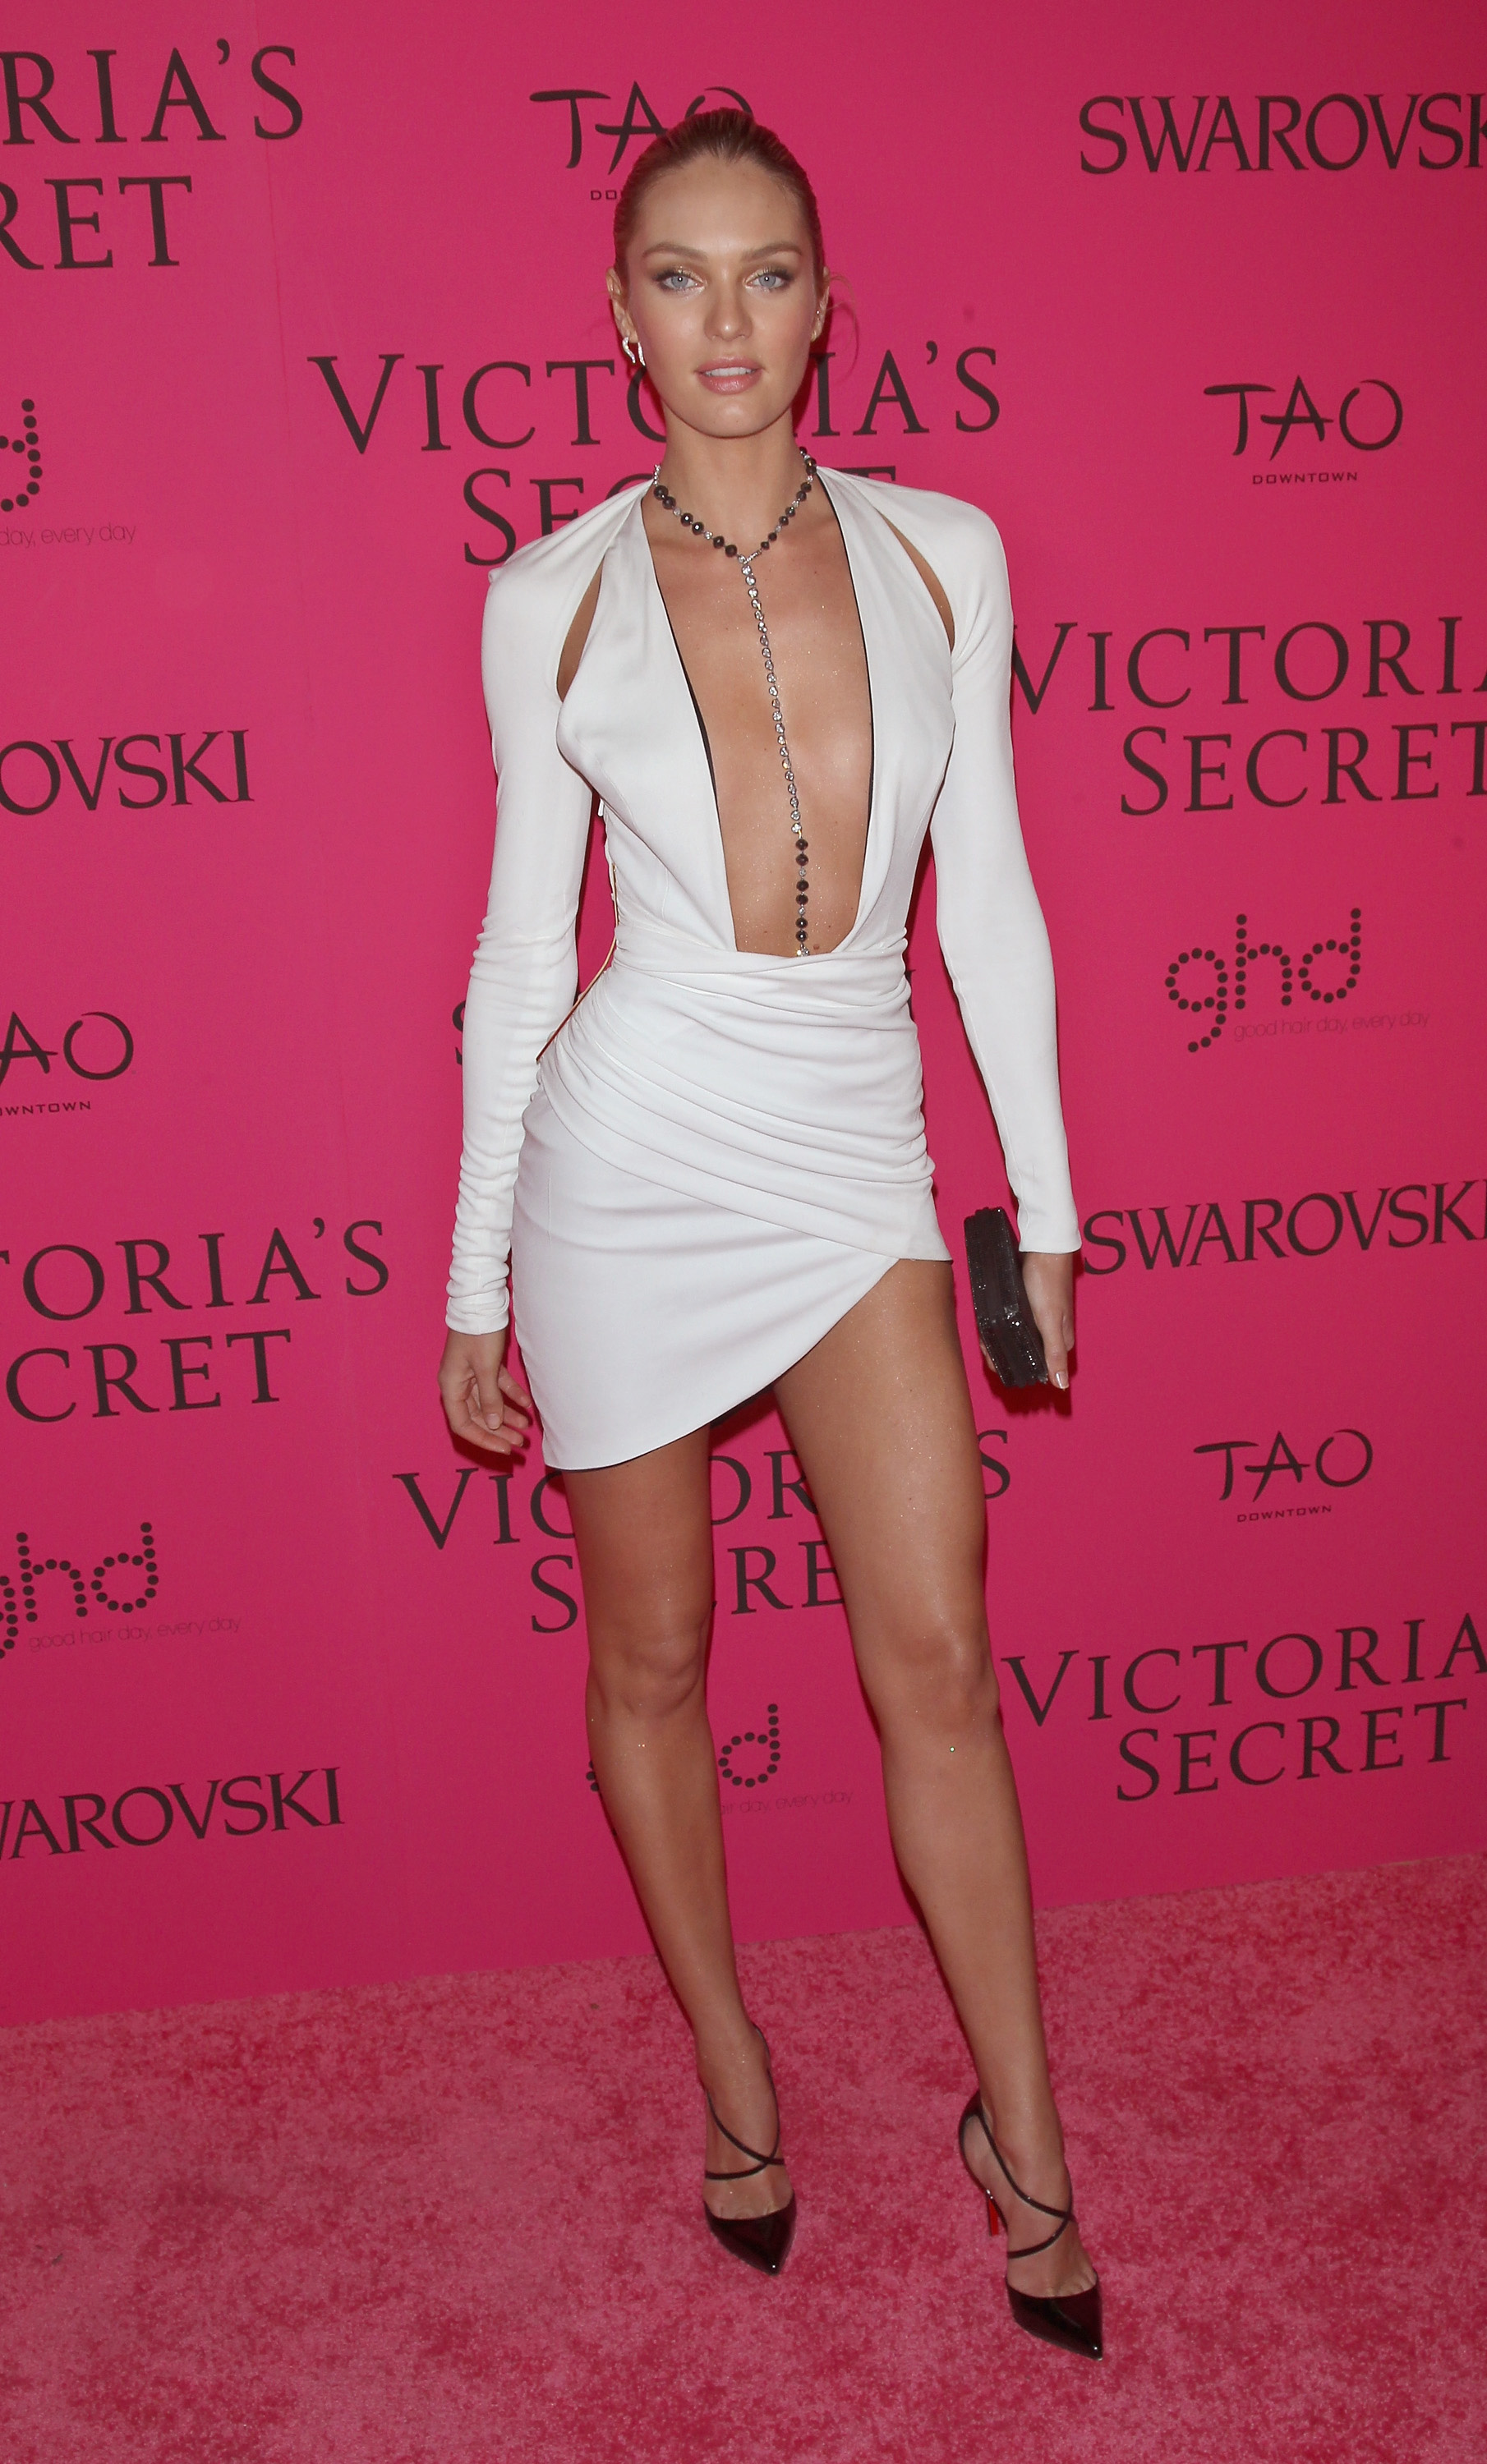 Candice Swanepoel wearing a body chain